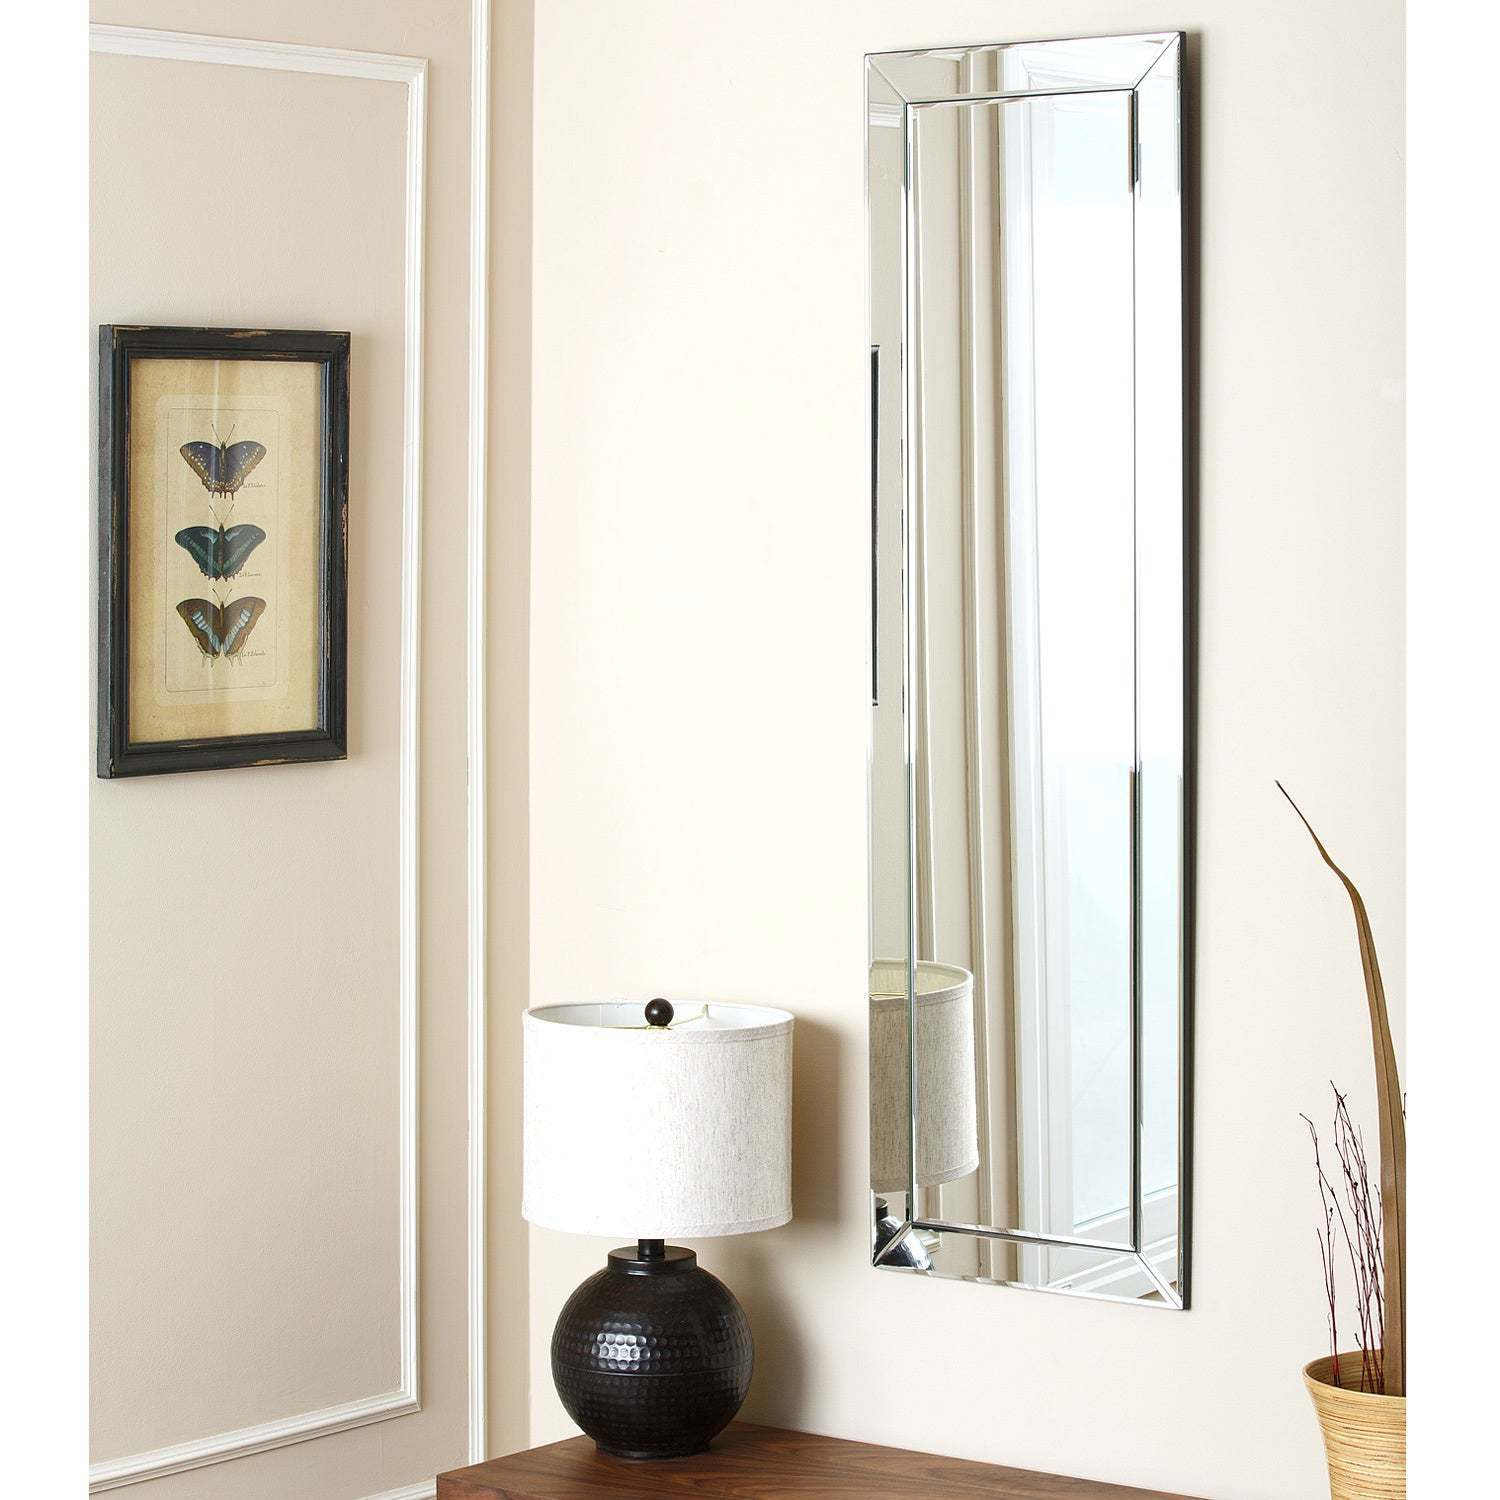 Pennsburg Rectangle Wall Mirror For Most Recently Released Buy Rectangular, Wall Mirror Mirrors Online At Overstock (View 18 of 20)